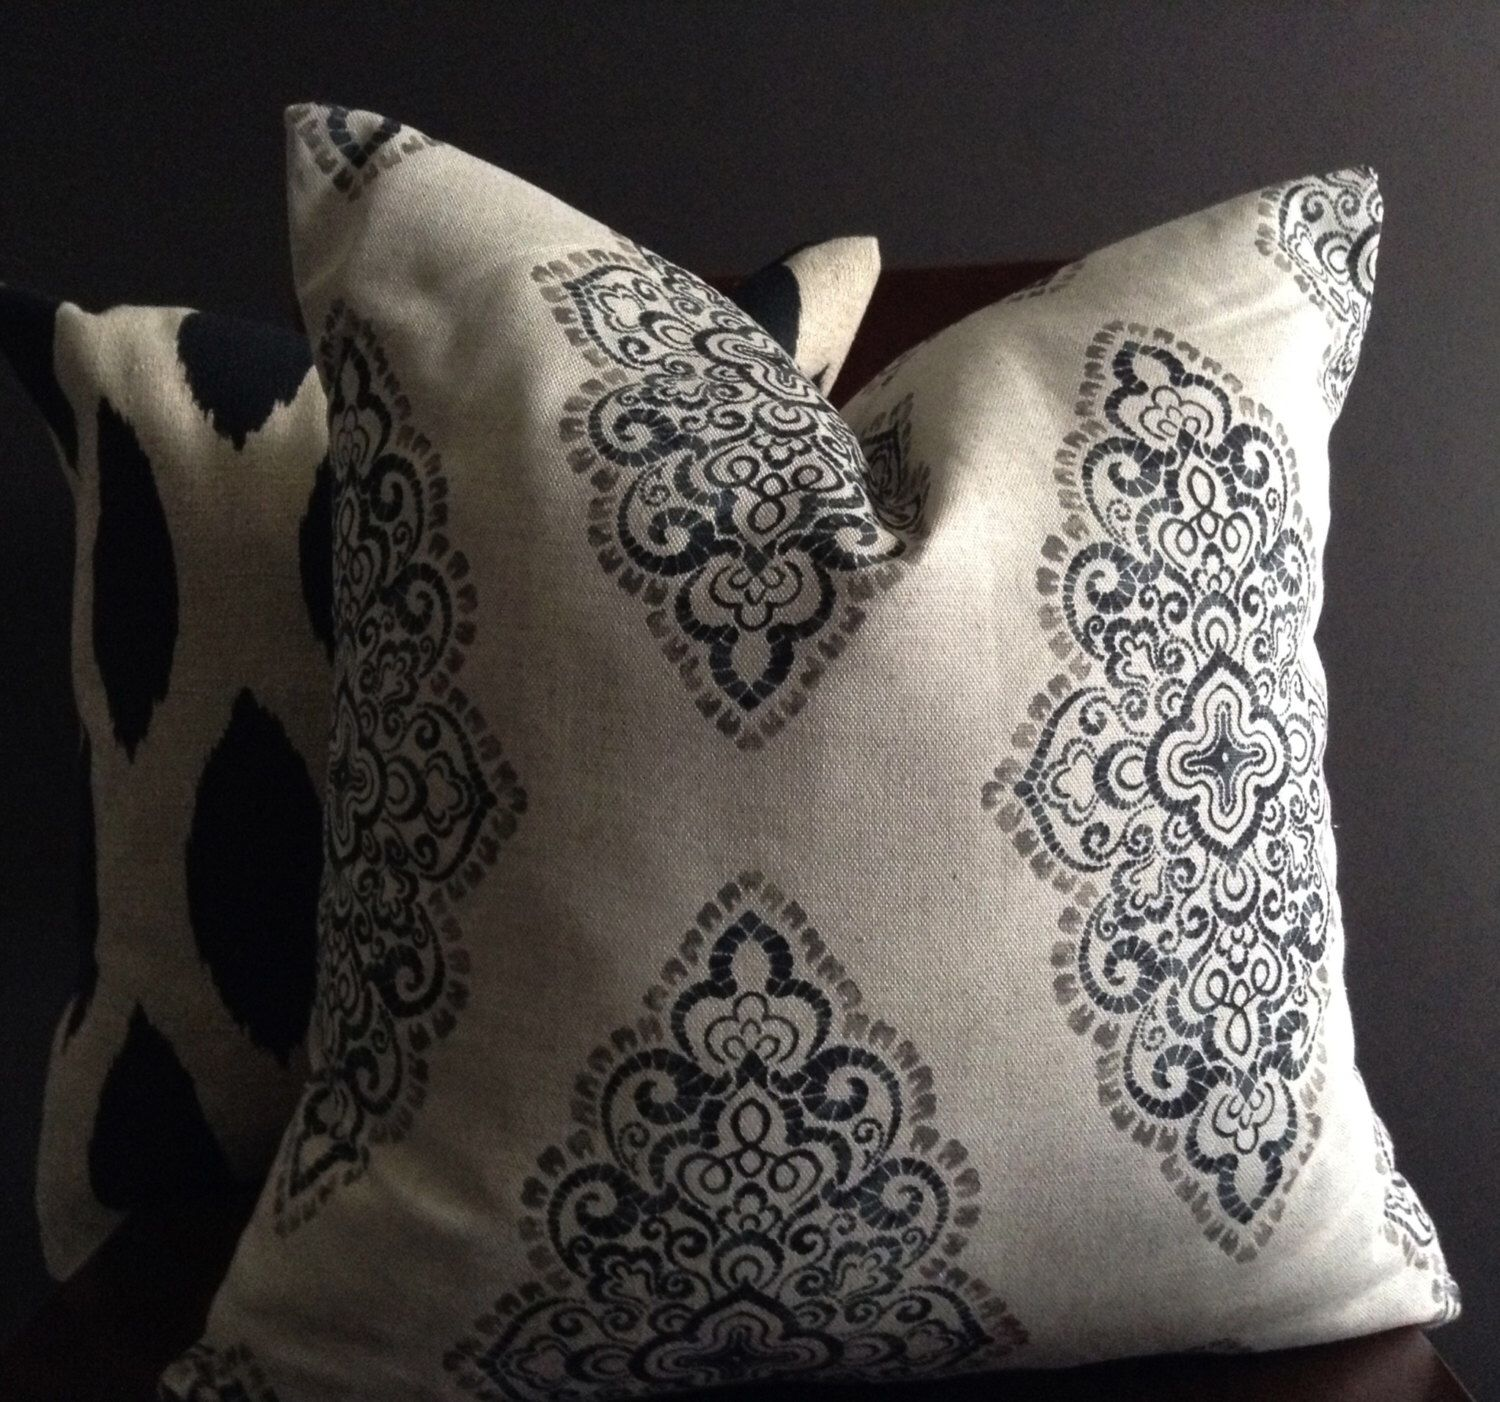 Pillow Cover, Black and Beige Blend Pillow Cover by StudioPillows on Etsy https://www.etsy.com/listing/212067548/pillow-cover-black-and-beige-blend